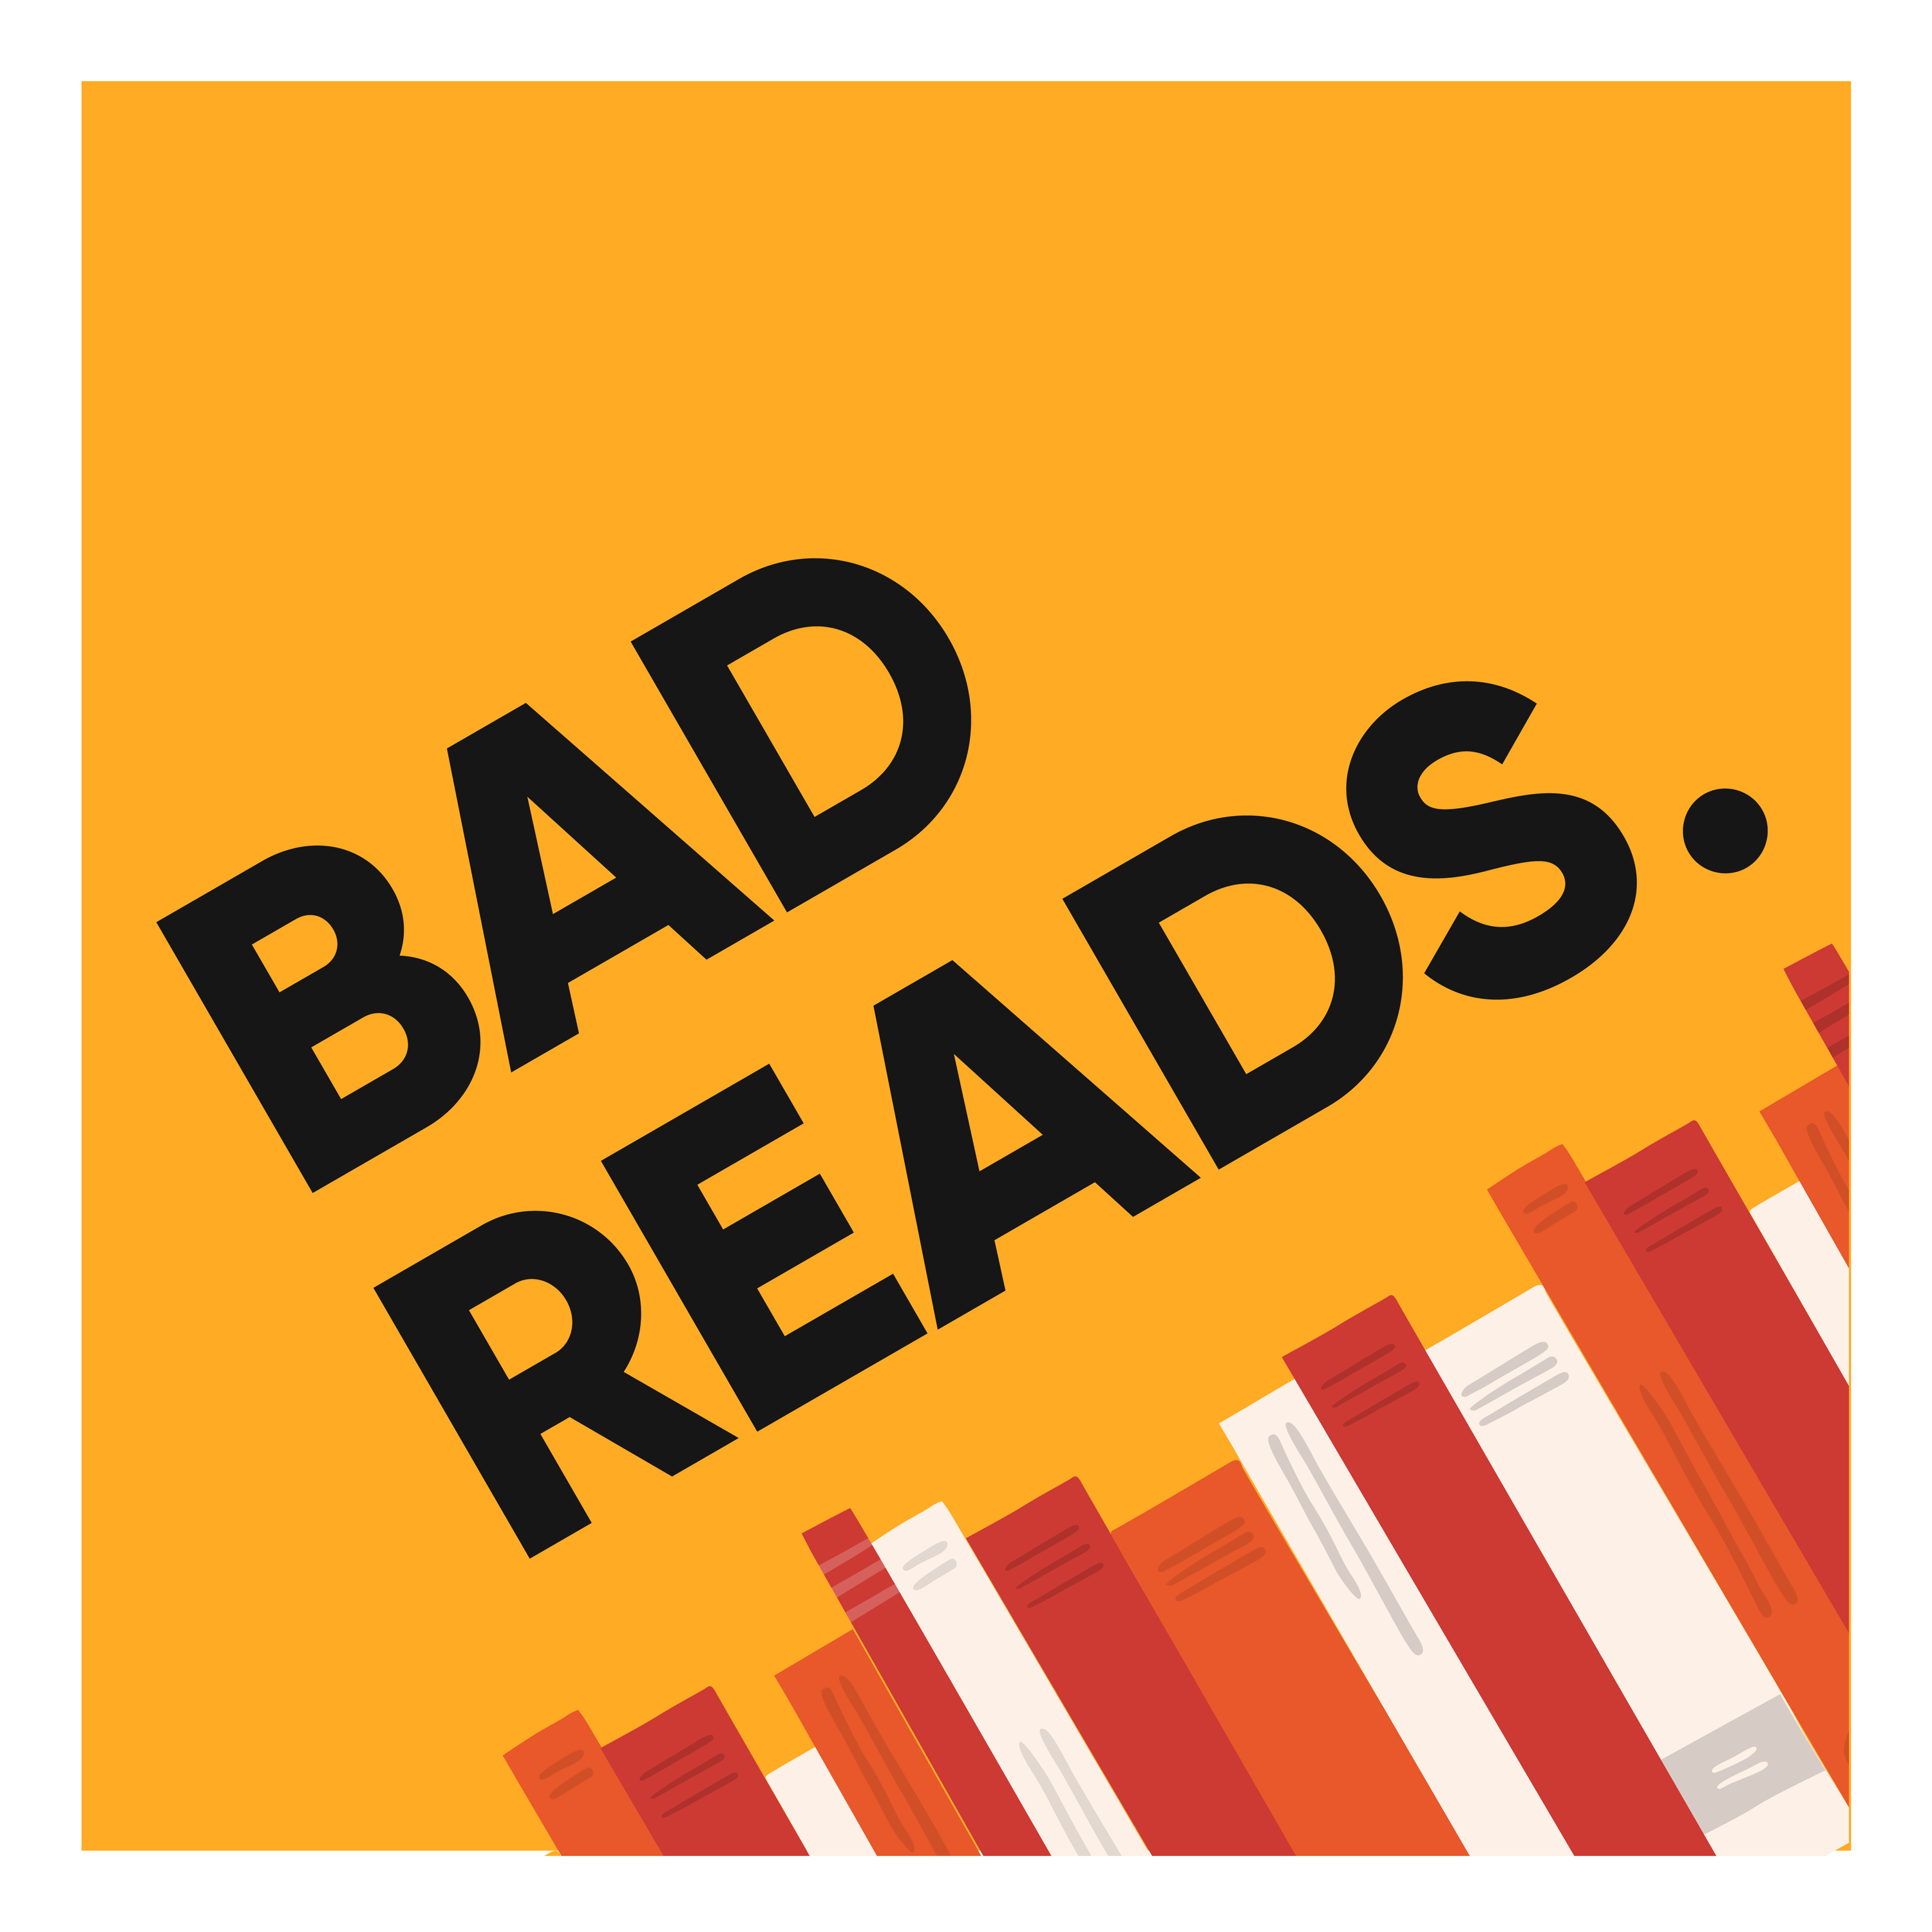 Episode 6: Bad Baths (and Other Places to Read)